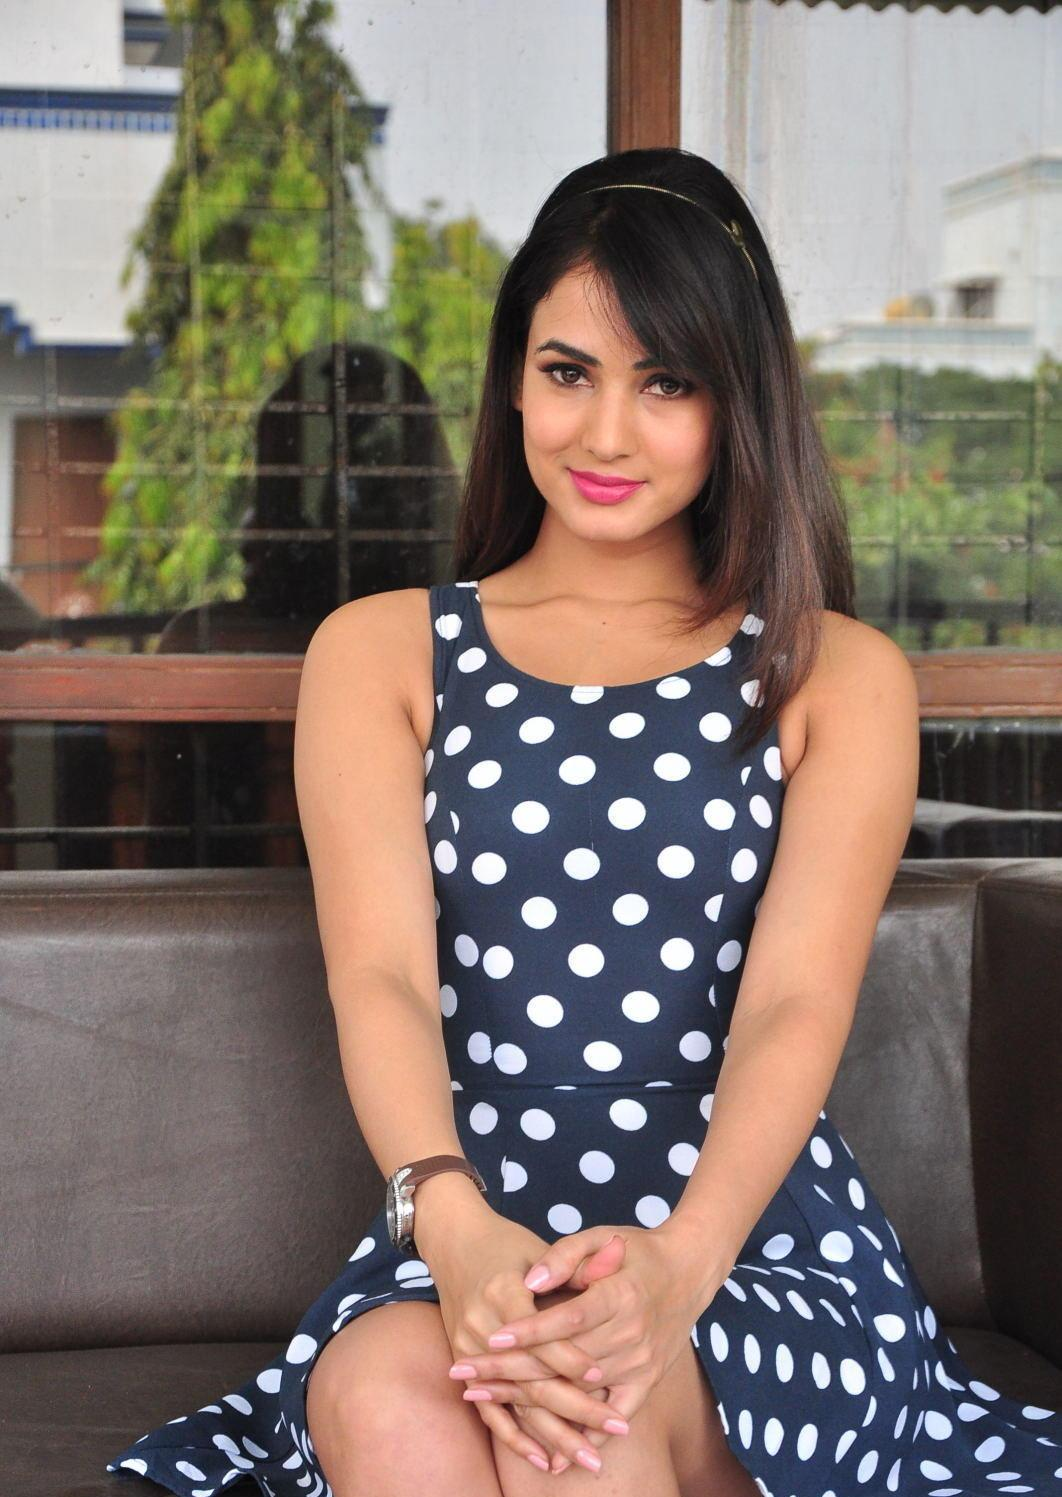 Sonal Chauhan Looks Irresistibly Sexy In A Black Polka Dot -6281